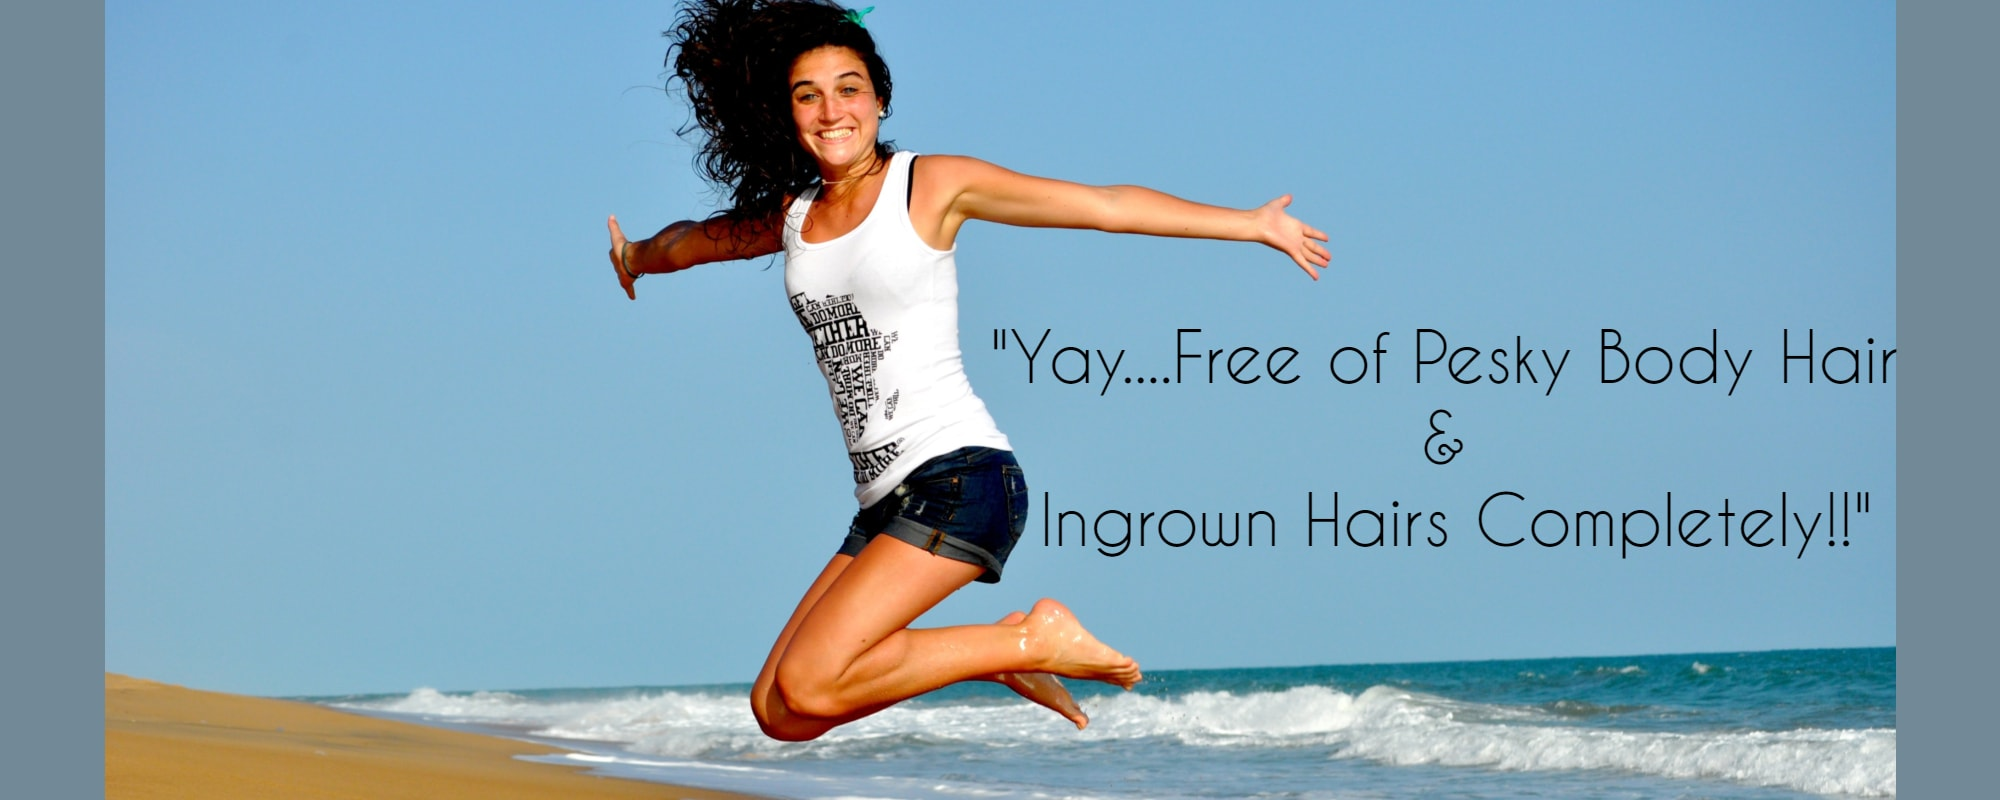 ingrown hair removal in Melbourne